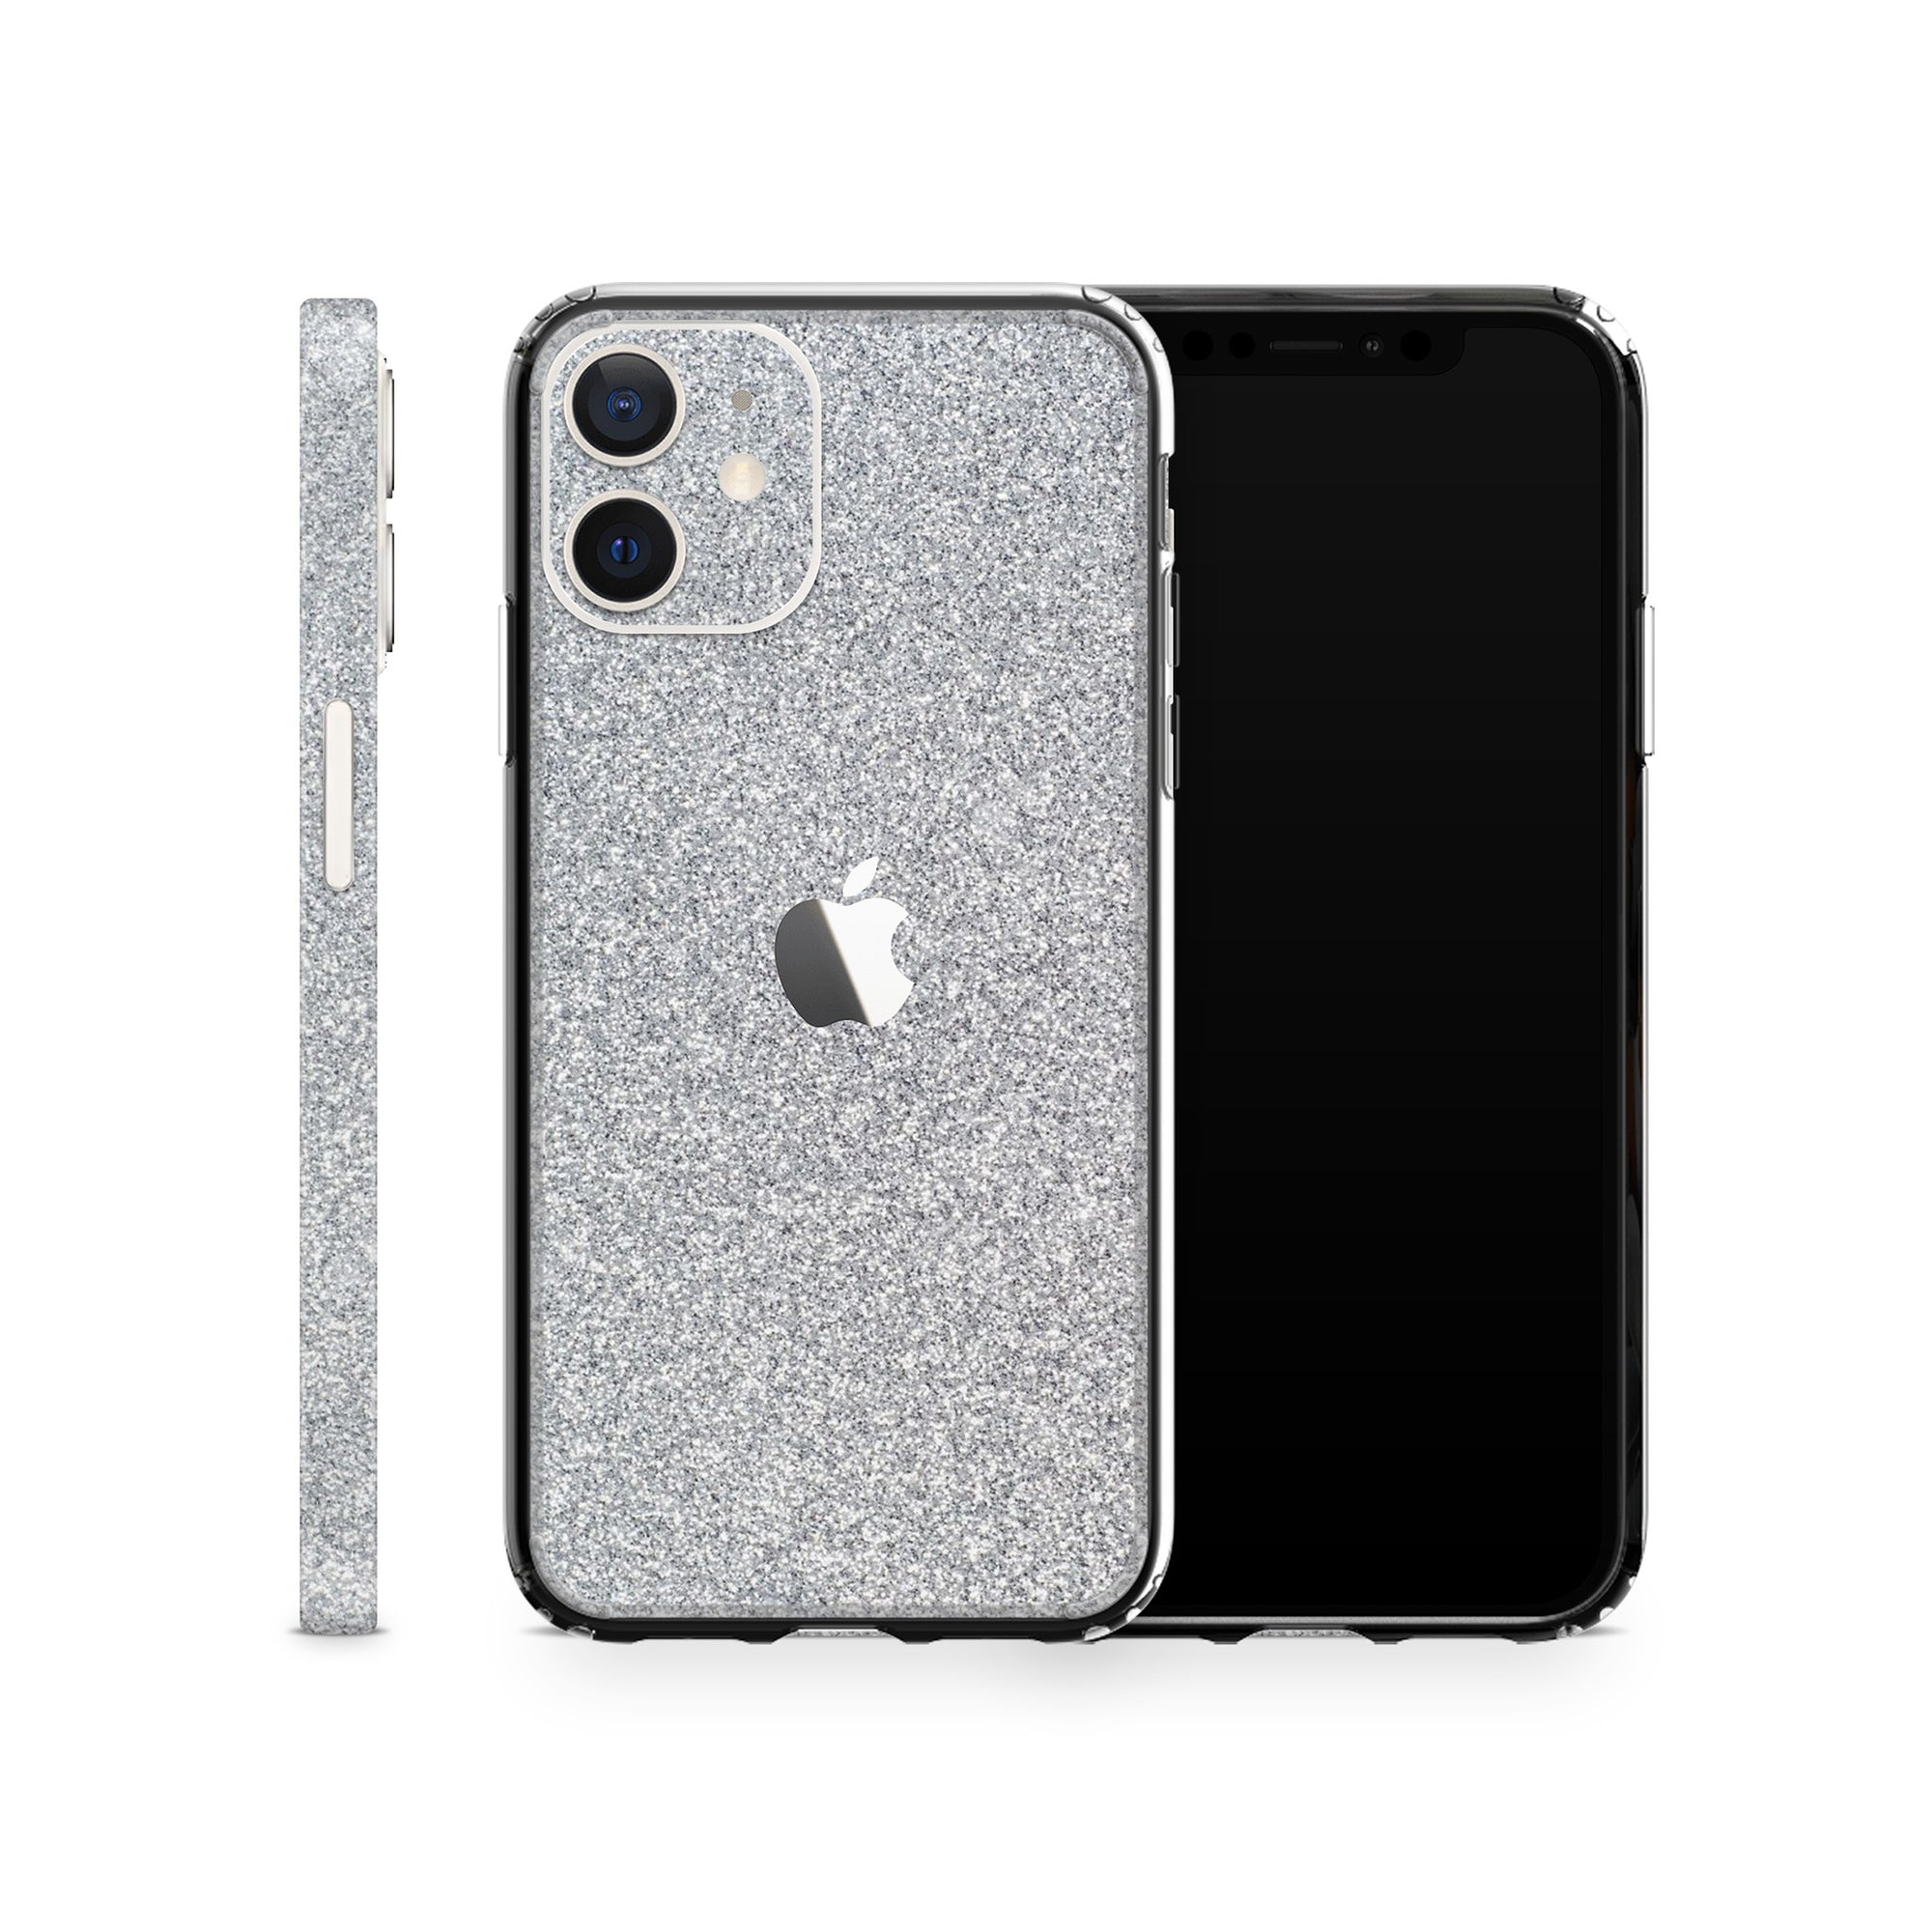 iPhone Case 12 Blanc